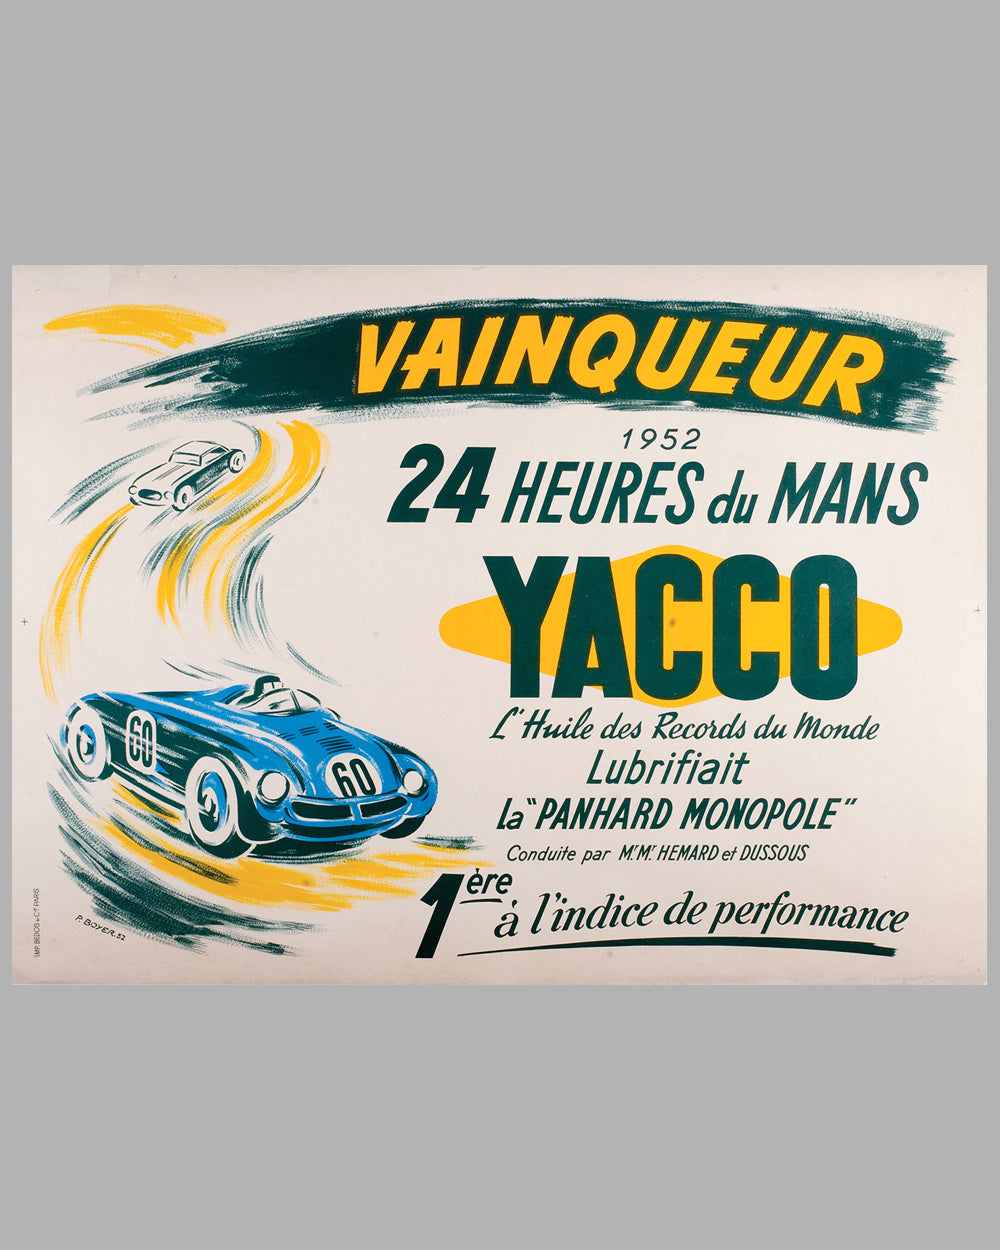 1952 Yacco Oil original advertising poster by P. Boyer